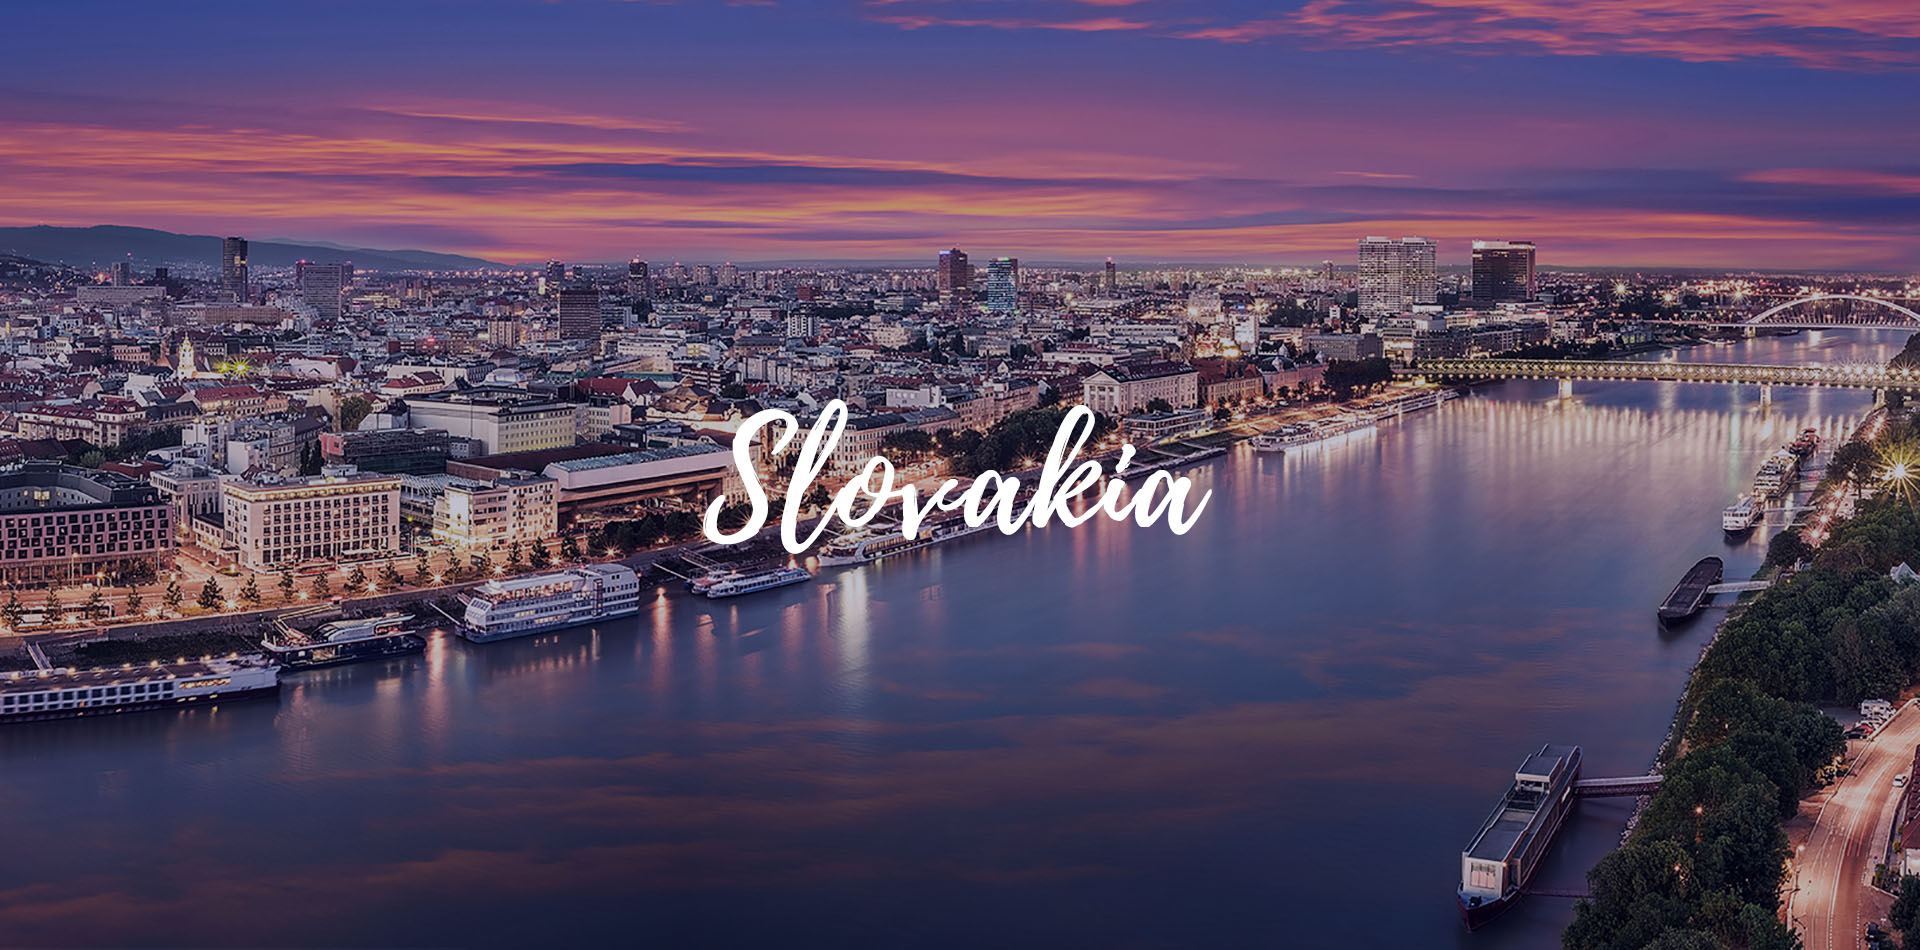 Europe Danube river cruising beautiful view of evening lights on the river in the capital city of Slovakia -luxury vacation destinations